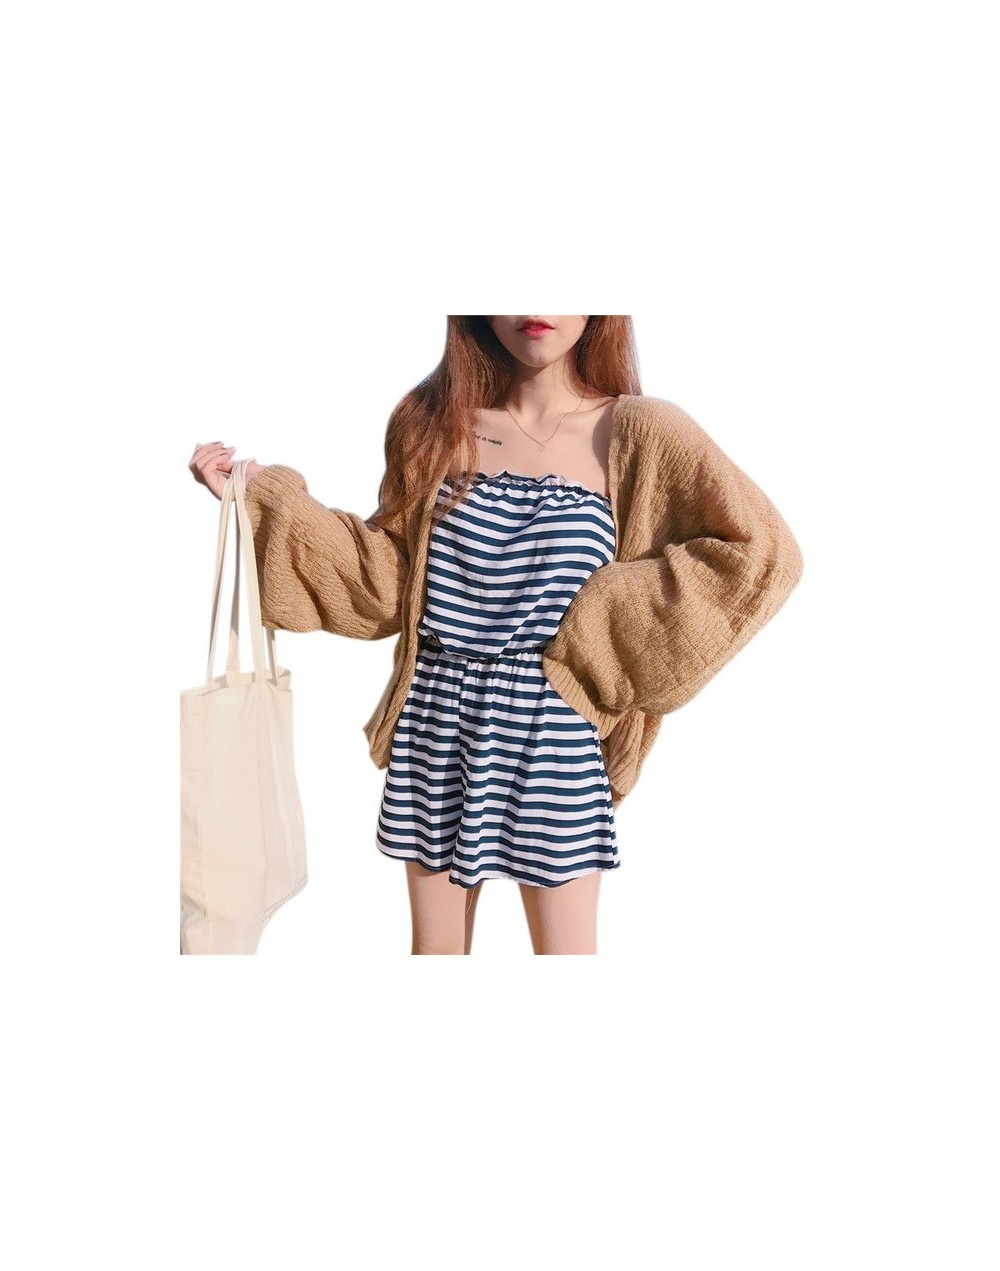 Vintage Knitted Kimono Cardigans Women Casual Tops And Blouse Ladies 2018 Summer Loose Solid Full Sleeve Blouse Tops - B2 - ...